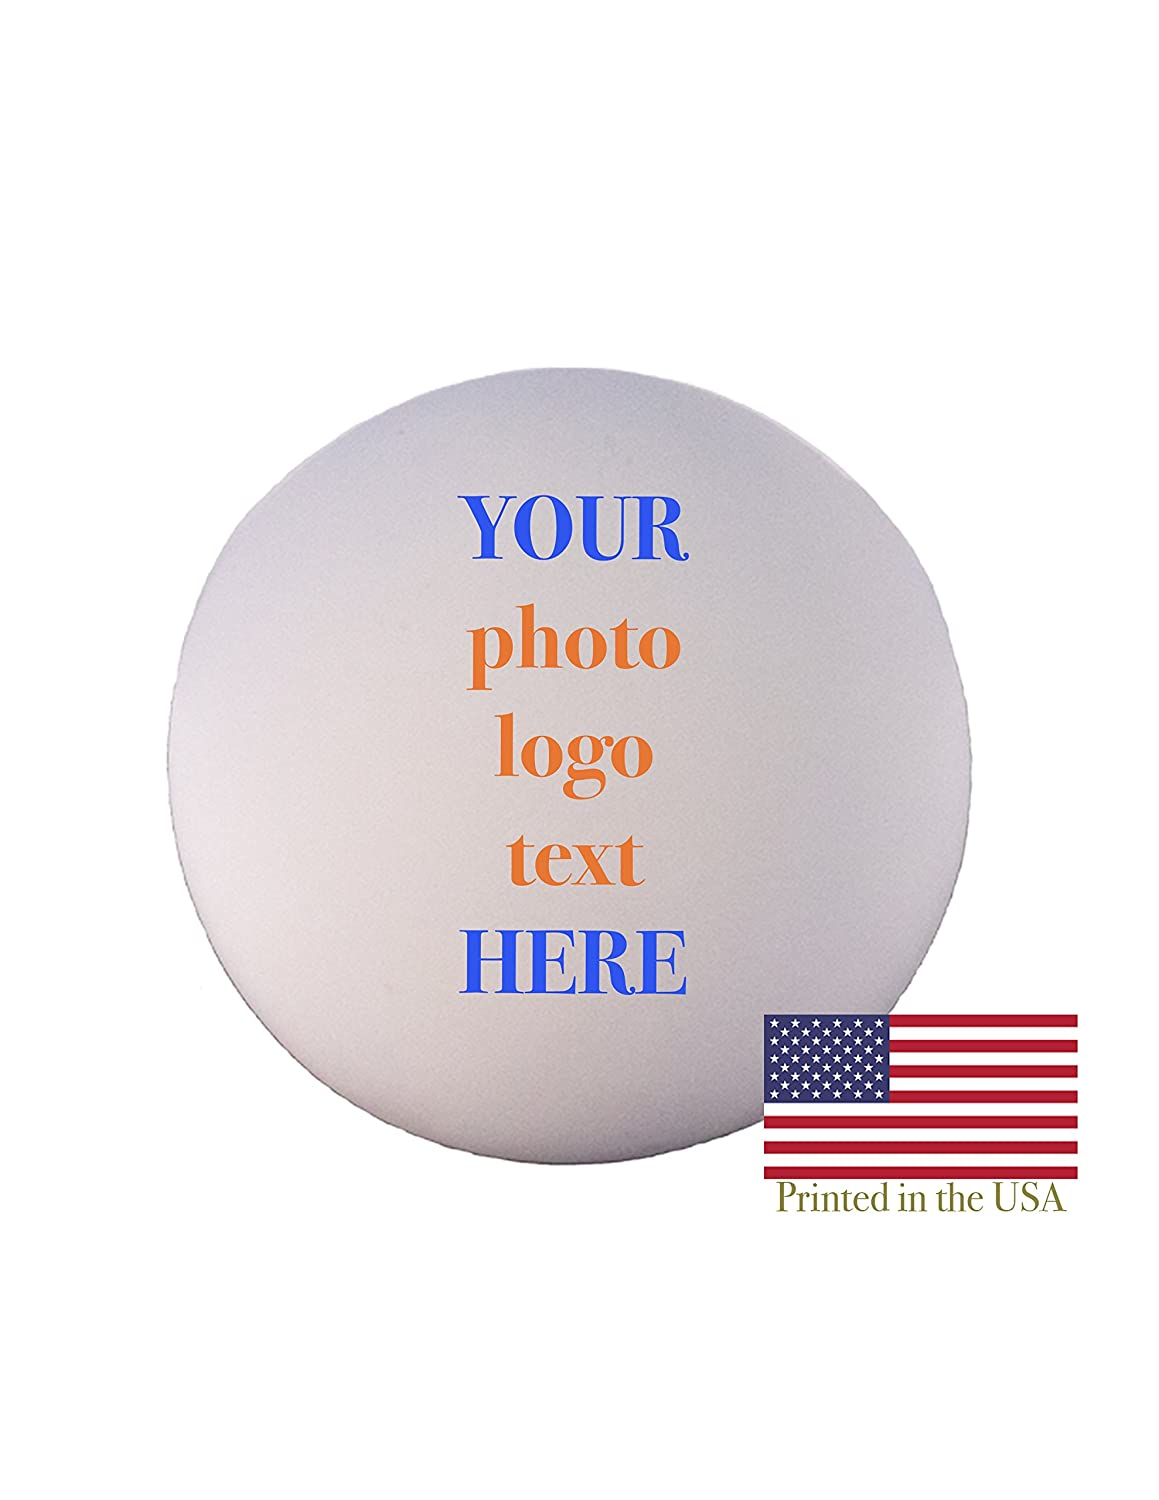 Custom Personalized Lacrosse Ball - Ships Next Day, High Resolution Photos, Logos & Text on Lacrosse Balls - for Players, Trophies, MVP Awards, Coaches, Personalized Gifts Ballstars